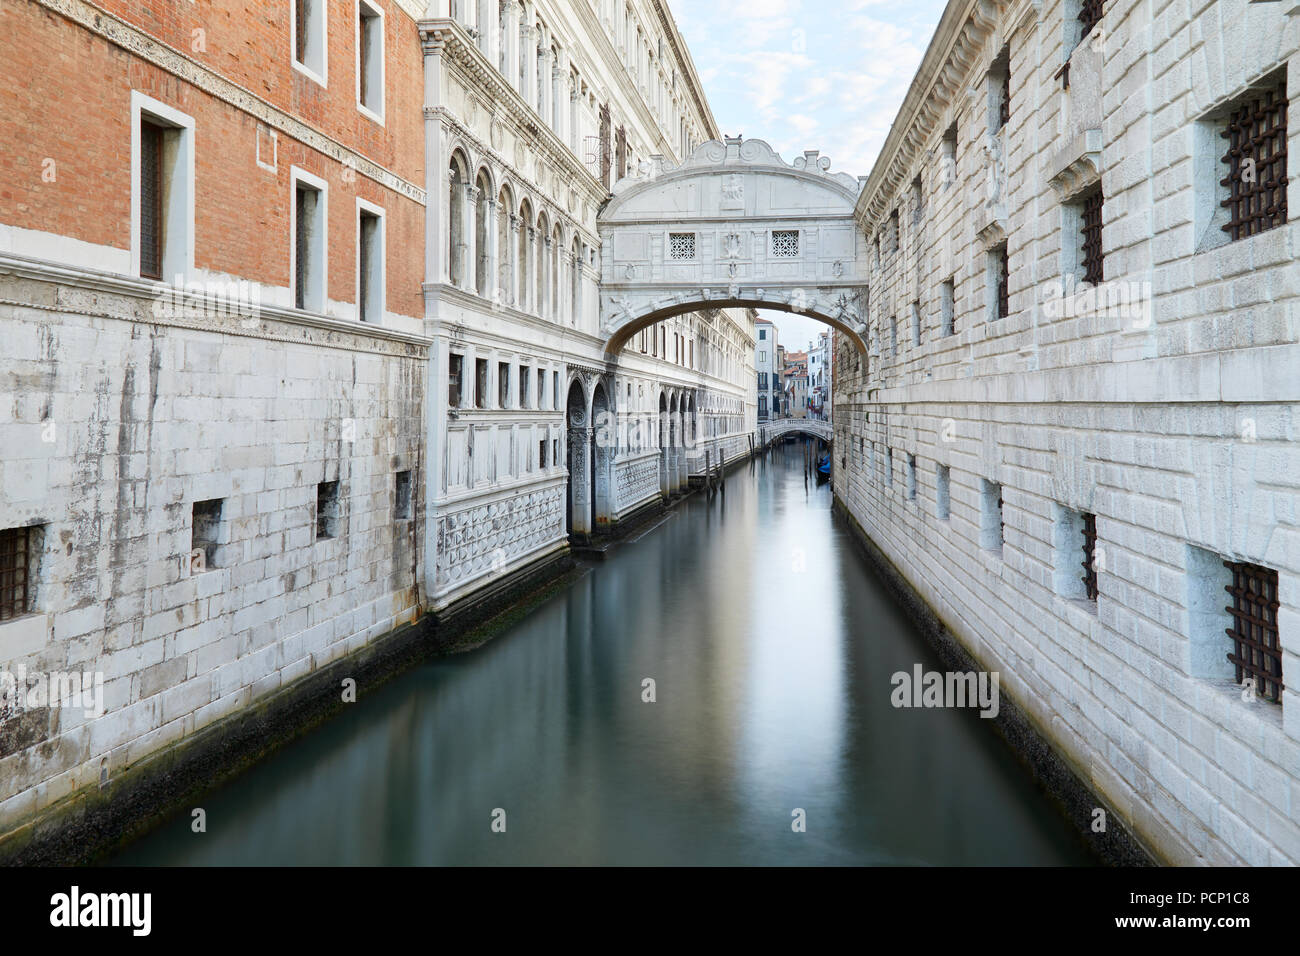 Bridge of Sighs and calm water in the canal, nobody in Venice, Italy - Stock Image